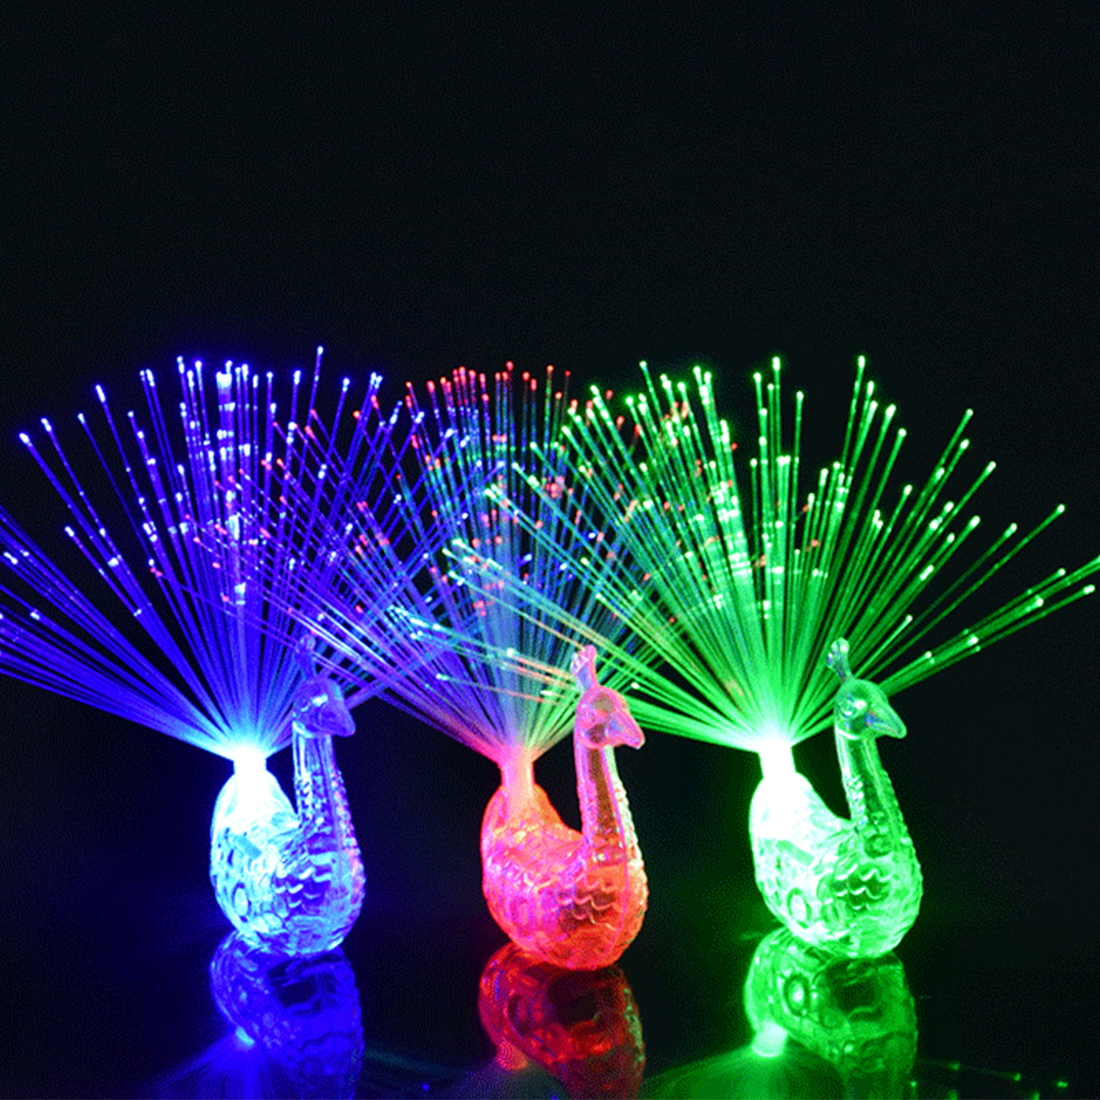 Night Party Supplies Peacock Finger Light Colorful LED Light-up Rings Kids Children Toys Night Vocal Concert Gadgets Decoration